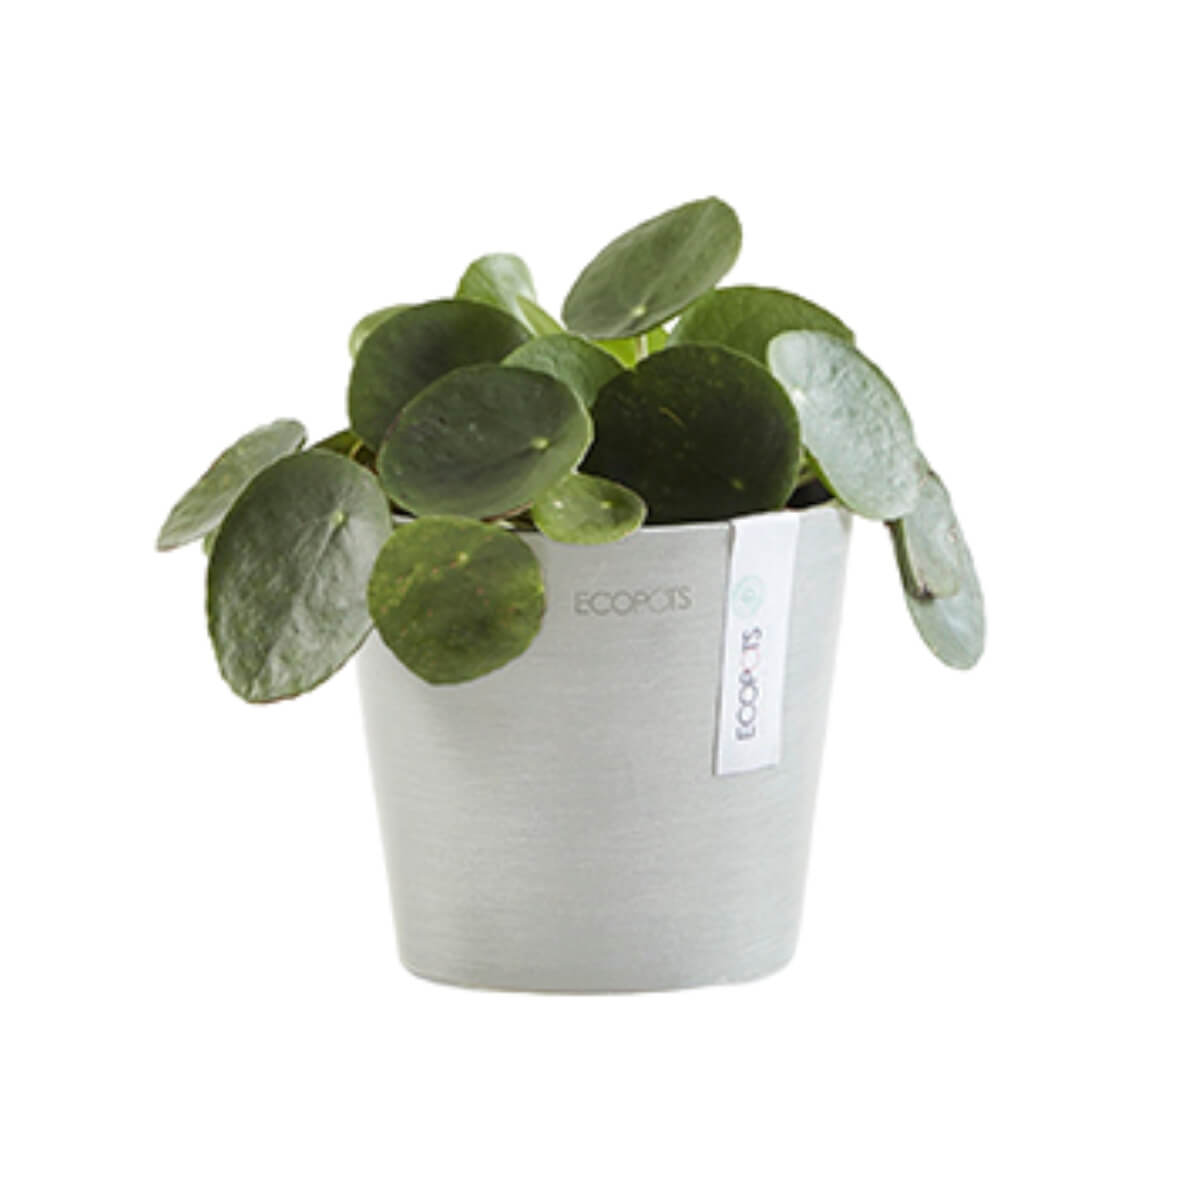 Medium Ecopots Amsterdam pot white with plant